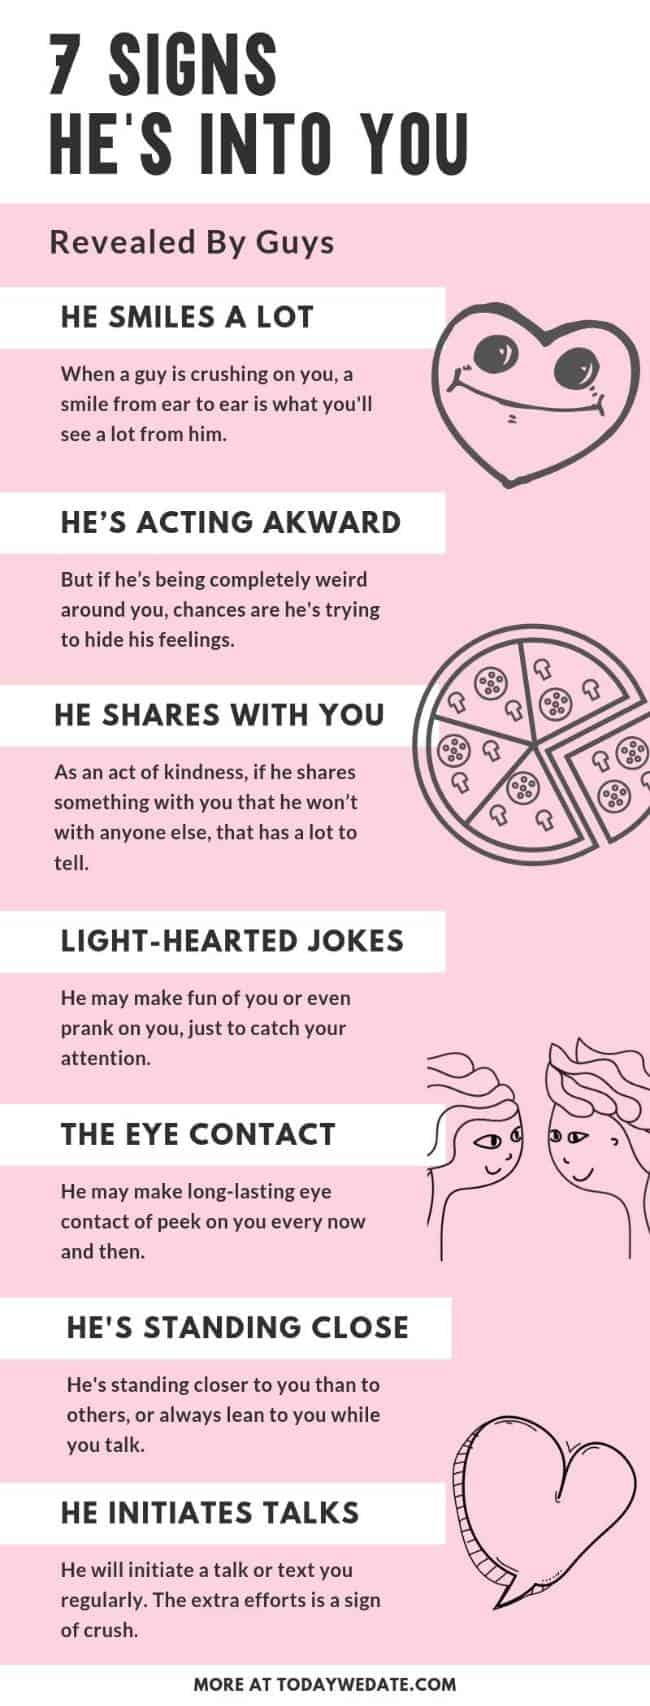 Signs-that-he-likes-you-infographic-Todaywedate.com_-1